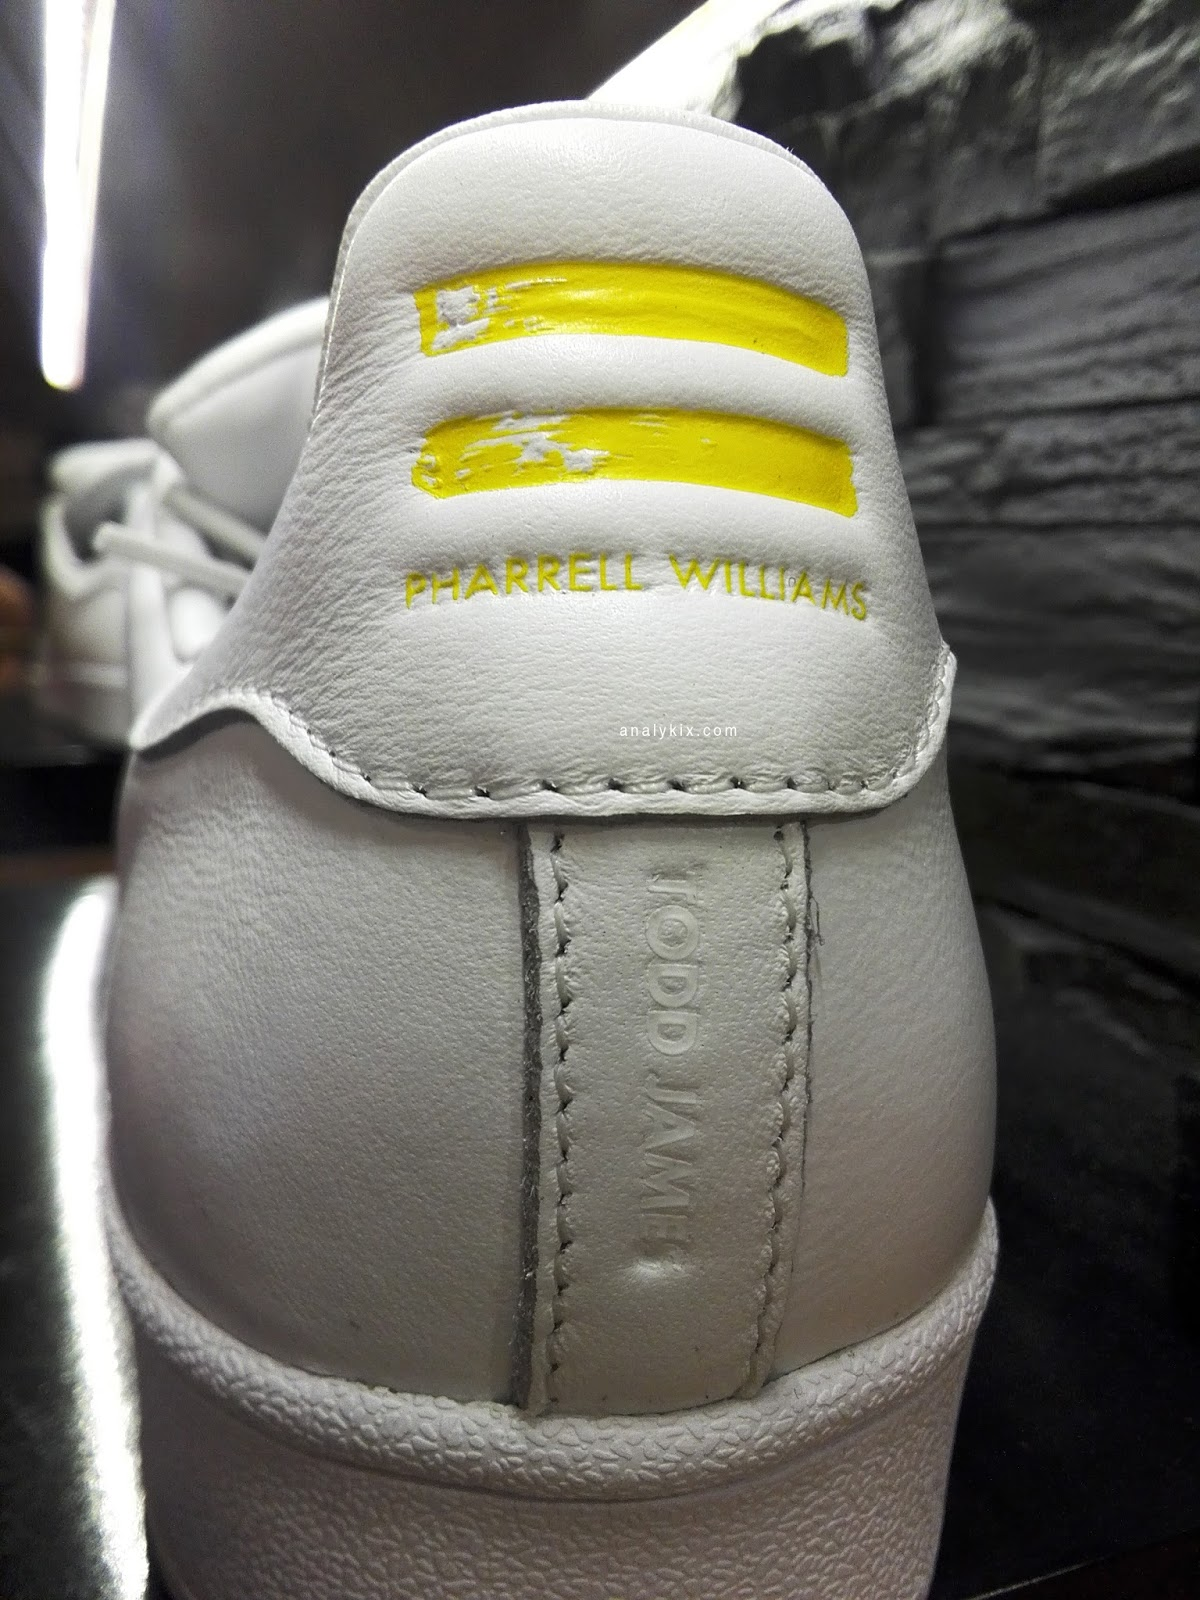 new style 73ea3 05380 The all-white versions of the Todd James and Pharrell Williams shoes are  exclusive to the Sole Academy Store in Trinoma (not sure if they re also  available ...